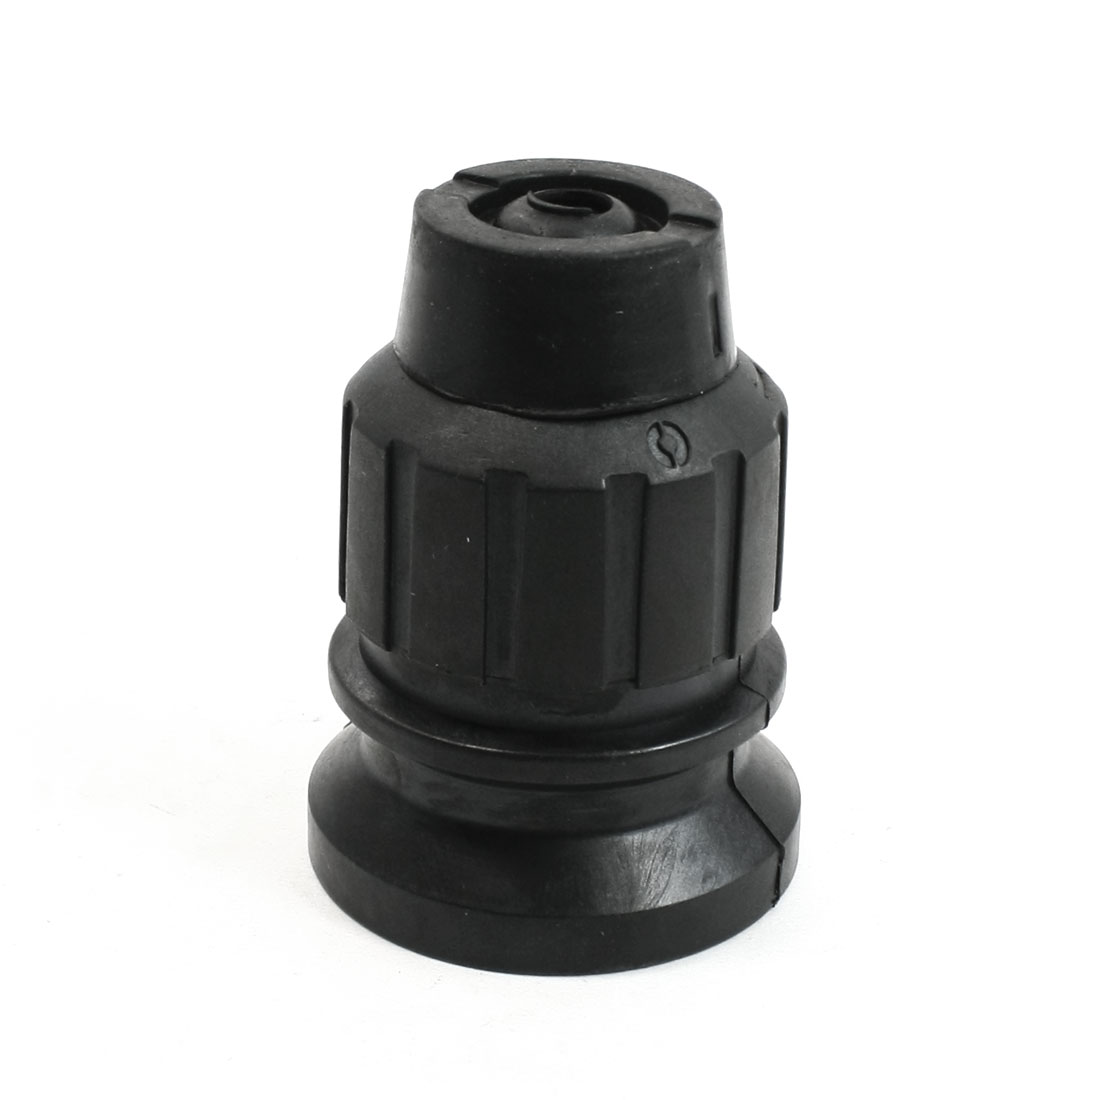 Replacement Electric Drill Spare Part Chuck for Hilti T15